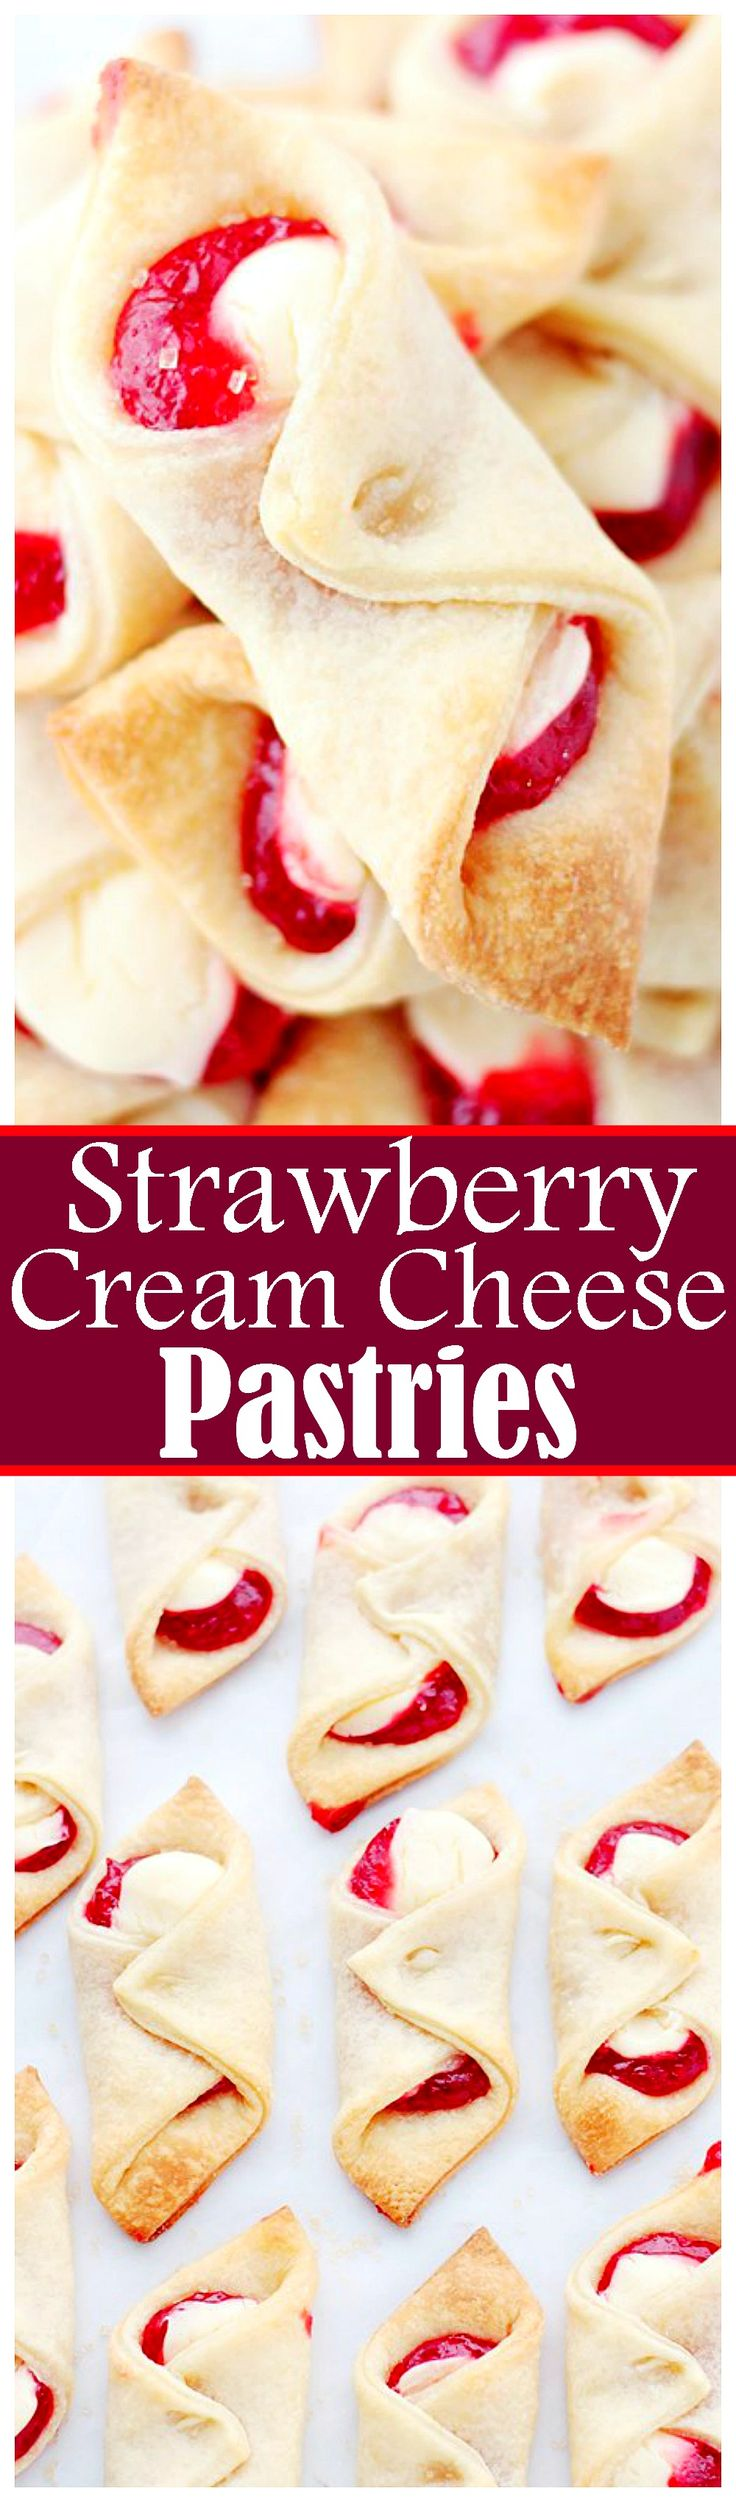 Strawberry Cream Cheese Pastries - Soft, flaky and delicious pastries filled with a sweet cream cheese mixture and strawberry jam.